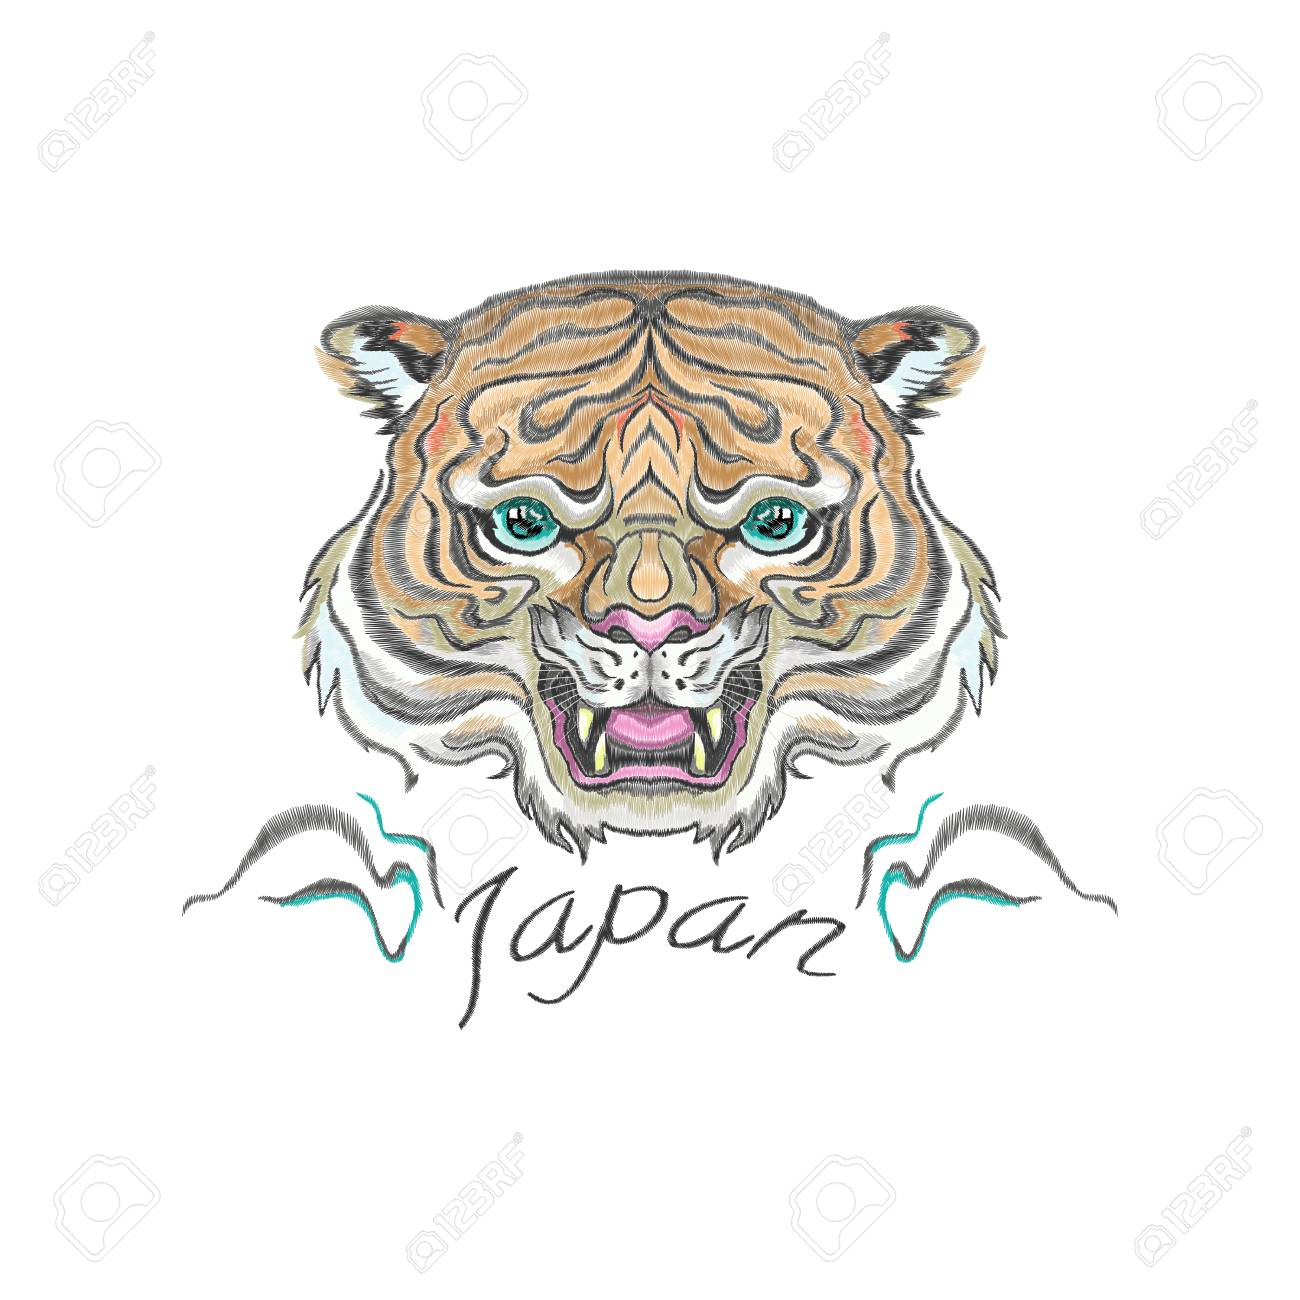 cfb895219 Embroidery oriental patch with tiger head. Vector embroidered floral  template for t shirt and fashion